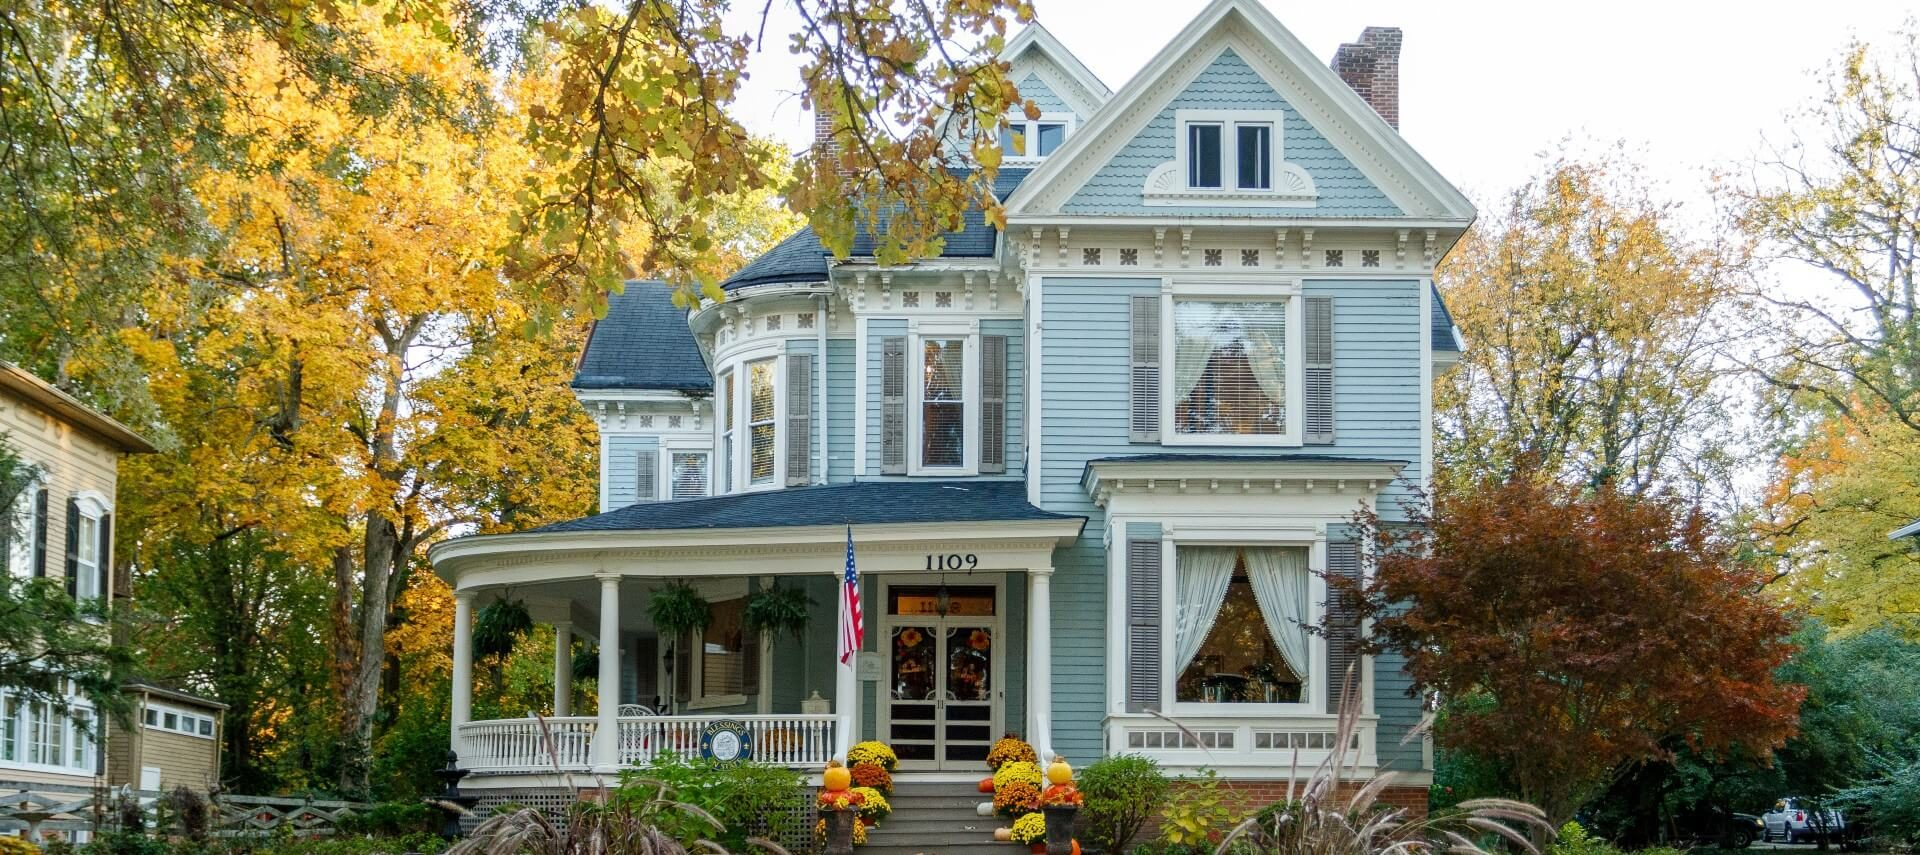 Blue Victorian home surrounded by colorful trees